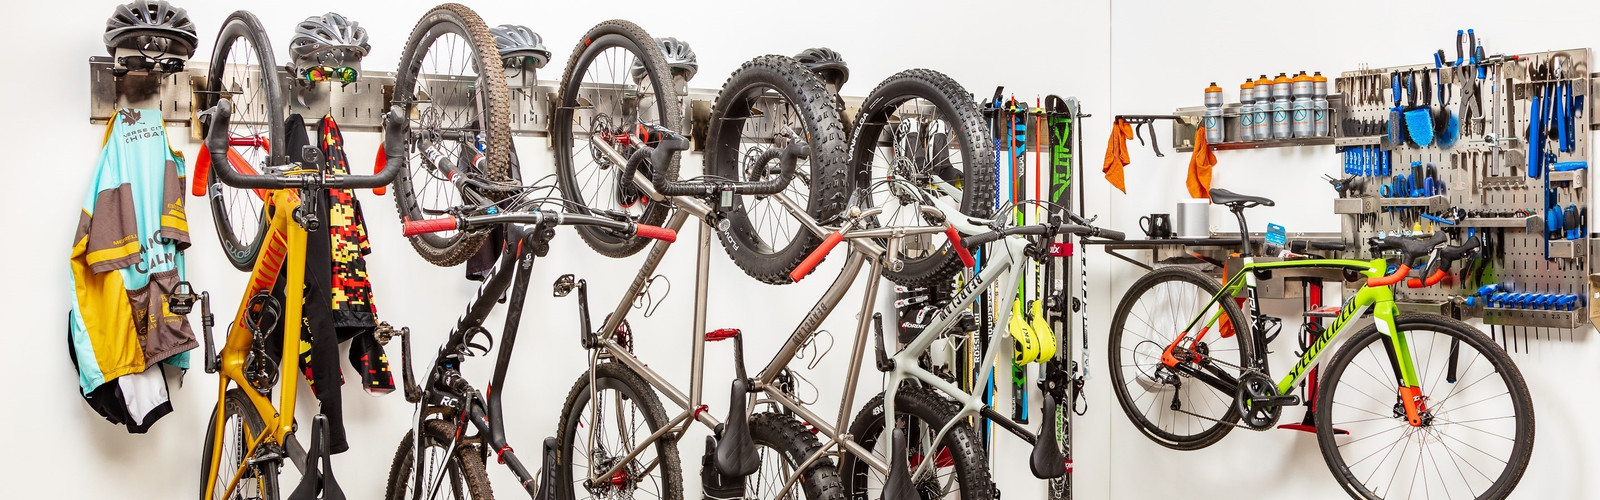 Road/Mountain Bike Storage